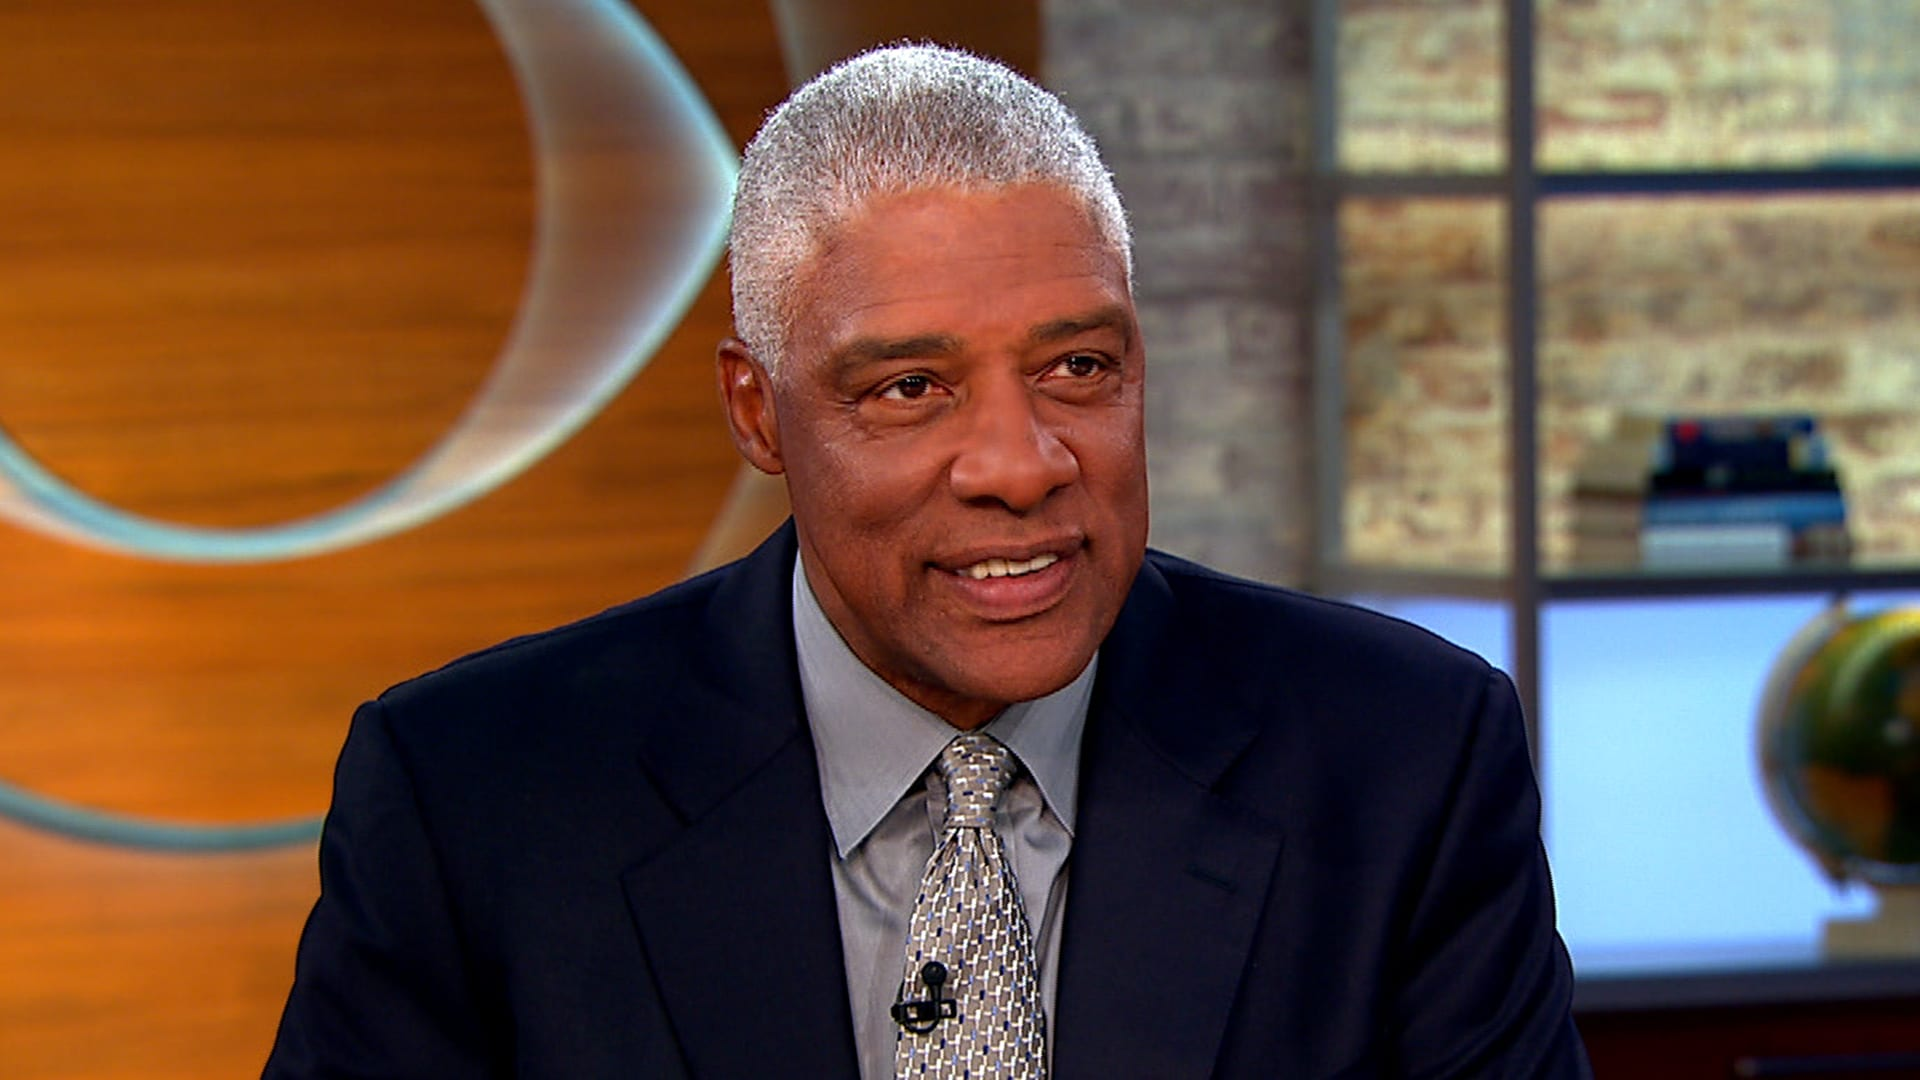 Dr. J Leaves LeBron James off His Top Two All-Time NBA Teams